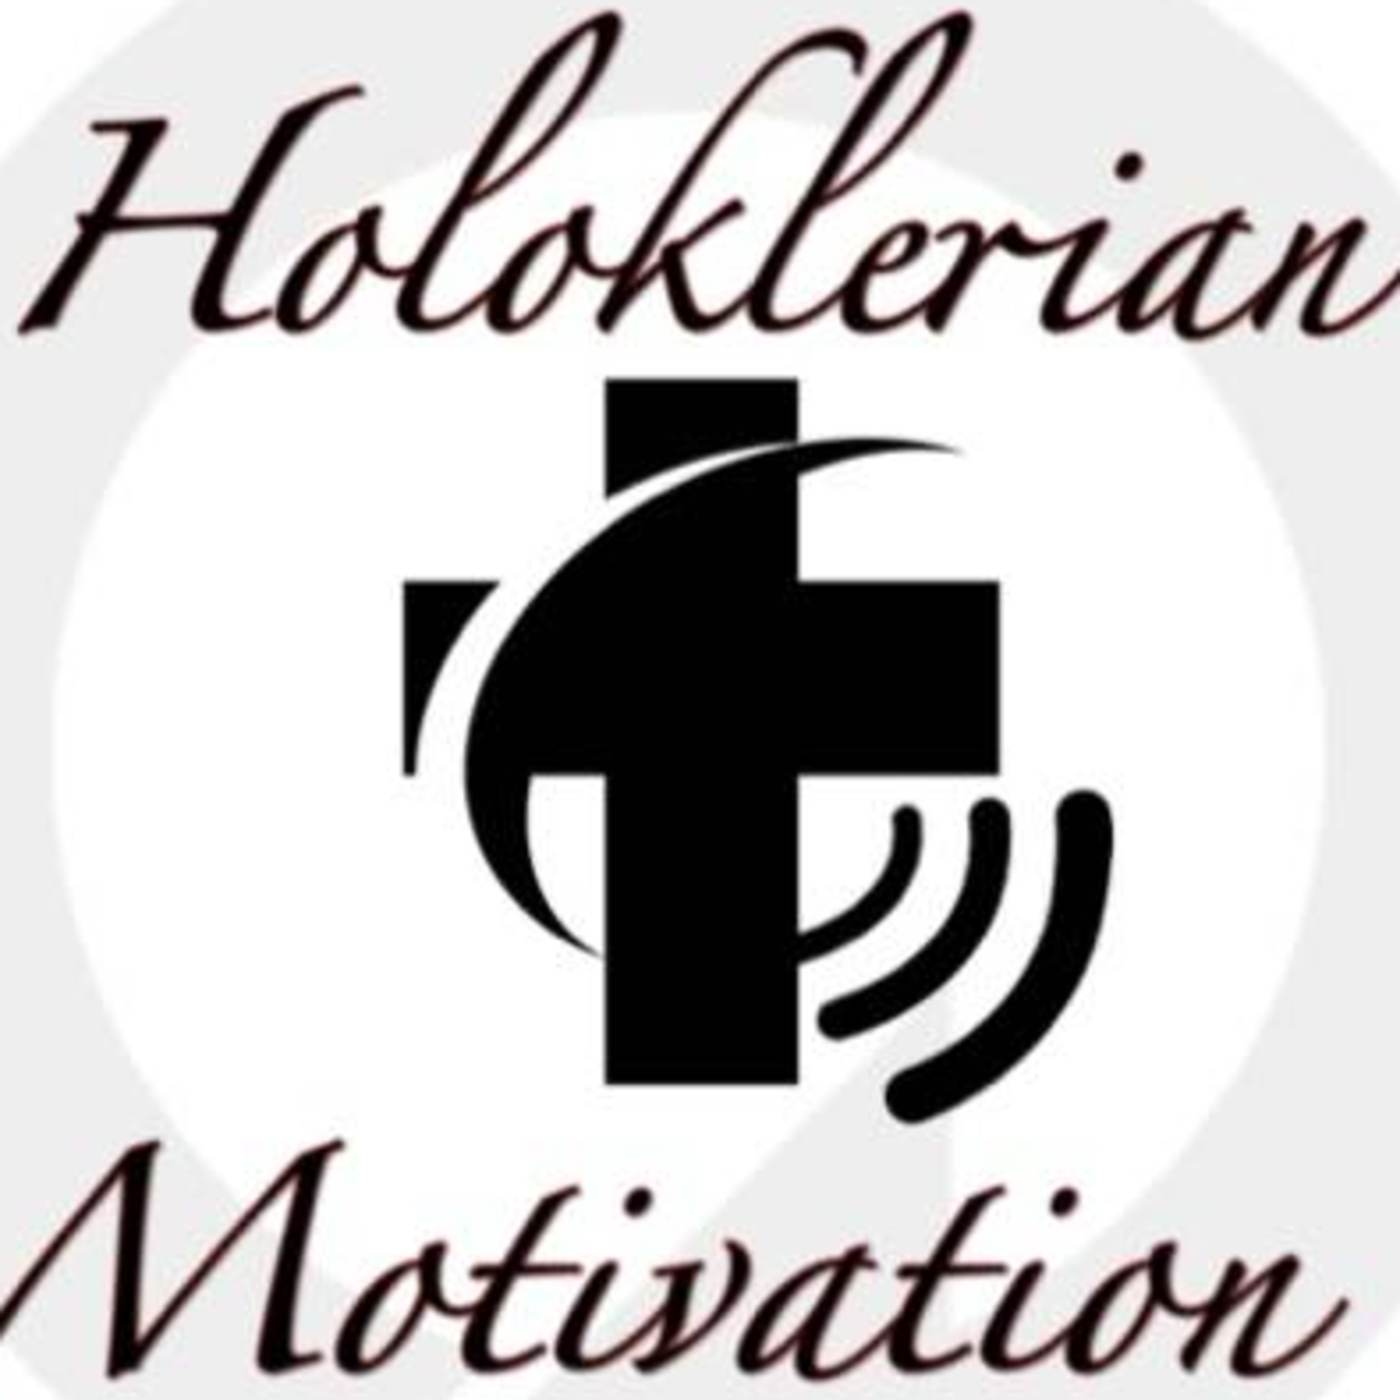 Holoklerian Motivation